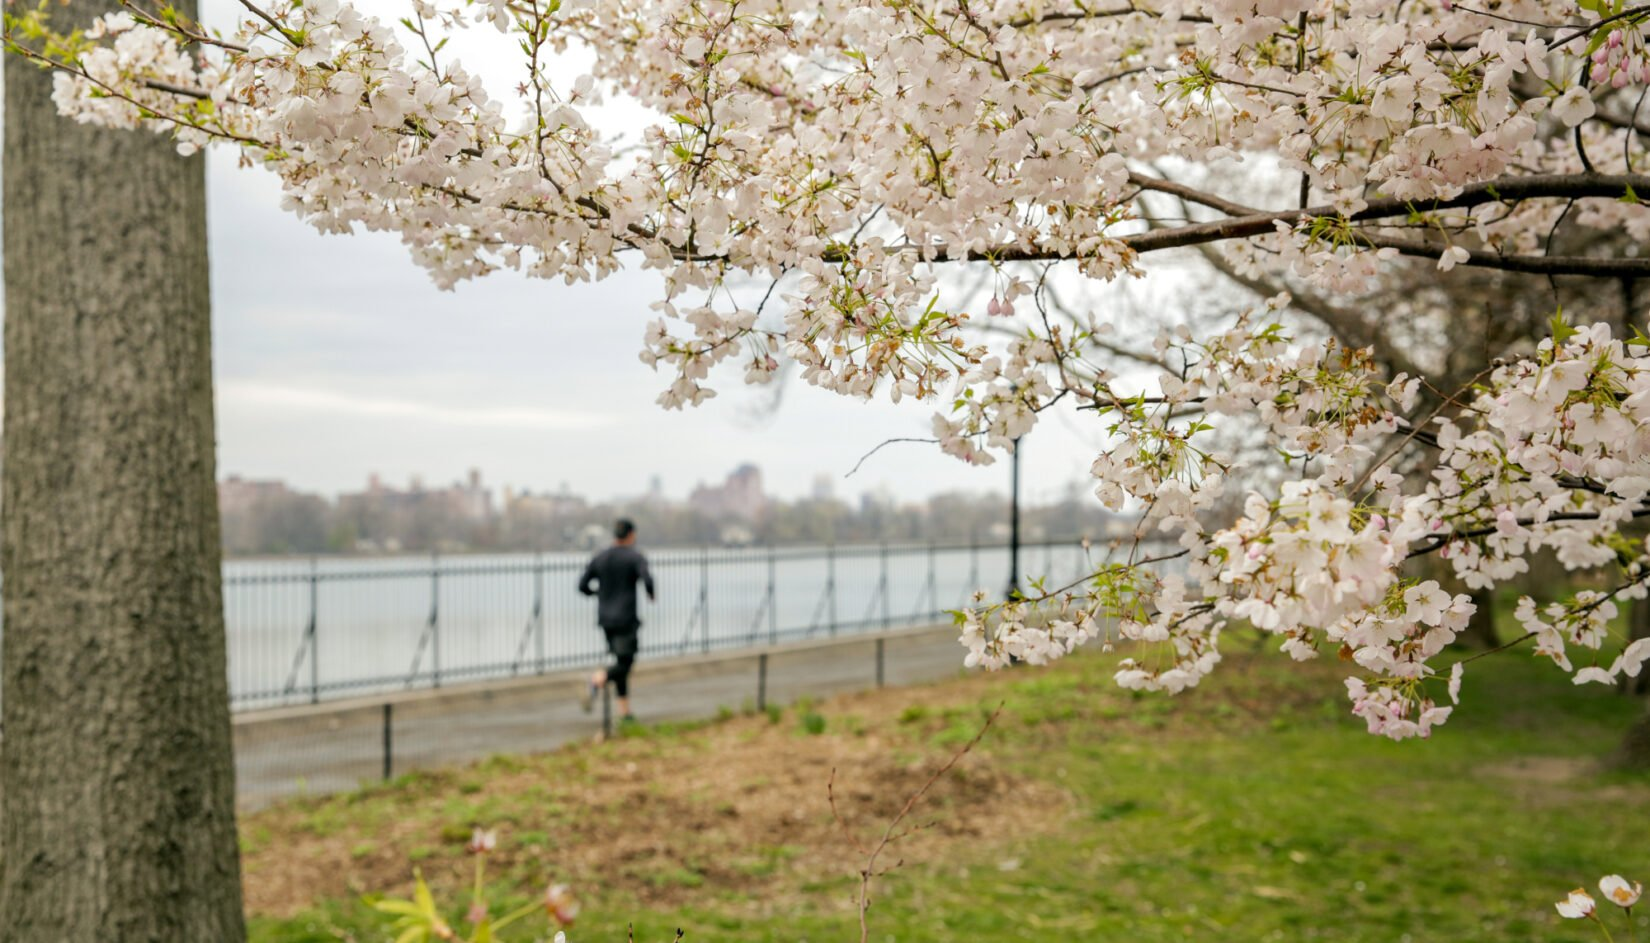 Cherry blossoms are shown in the foreground, with a lone jogger circling the Reservoir in the background.